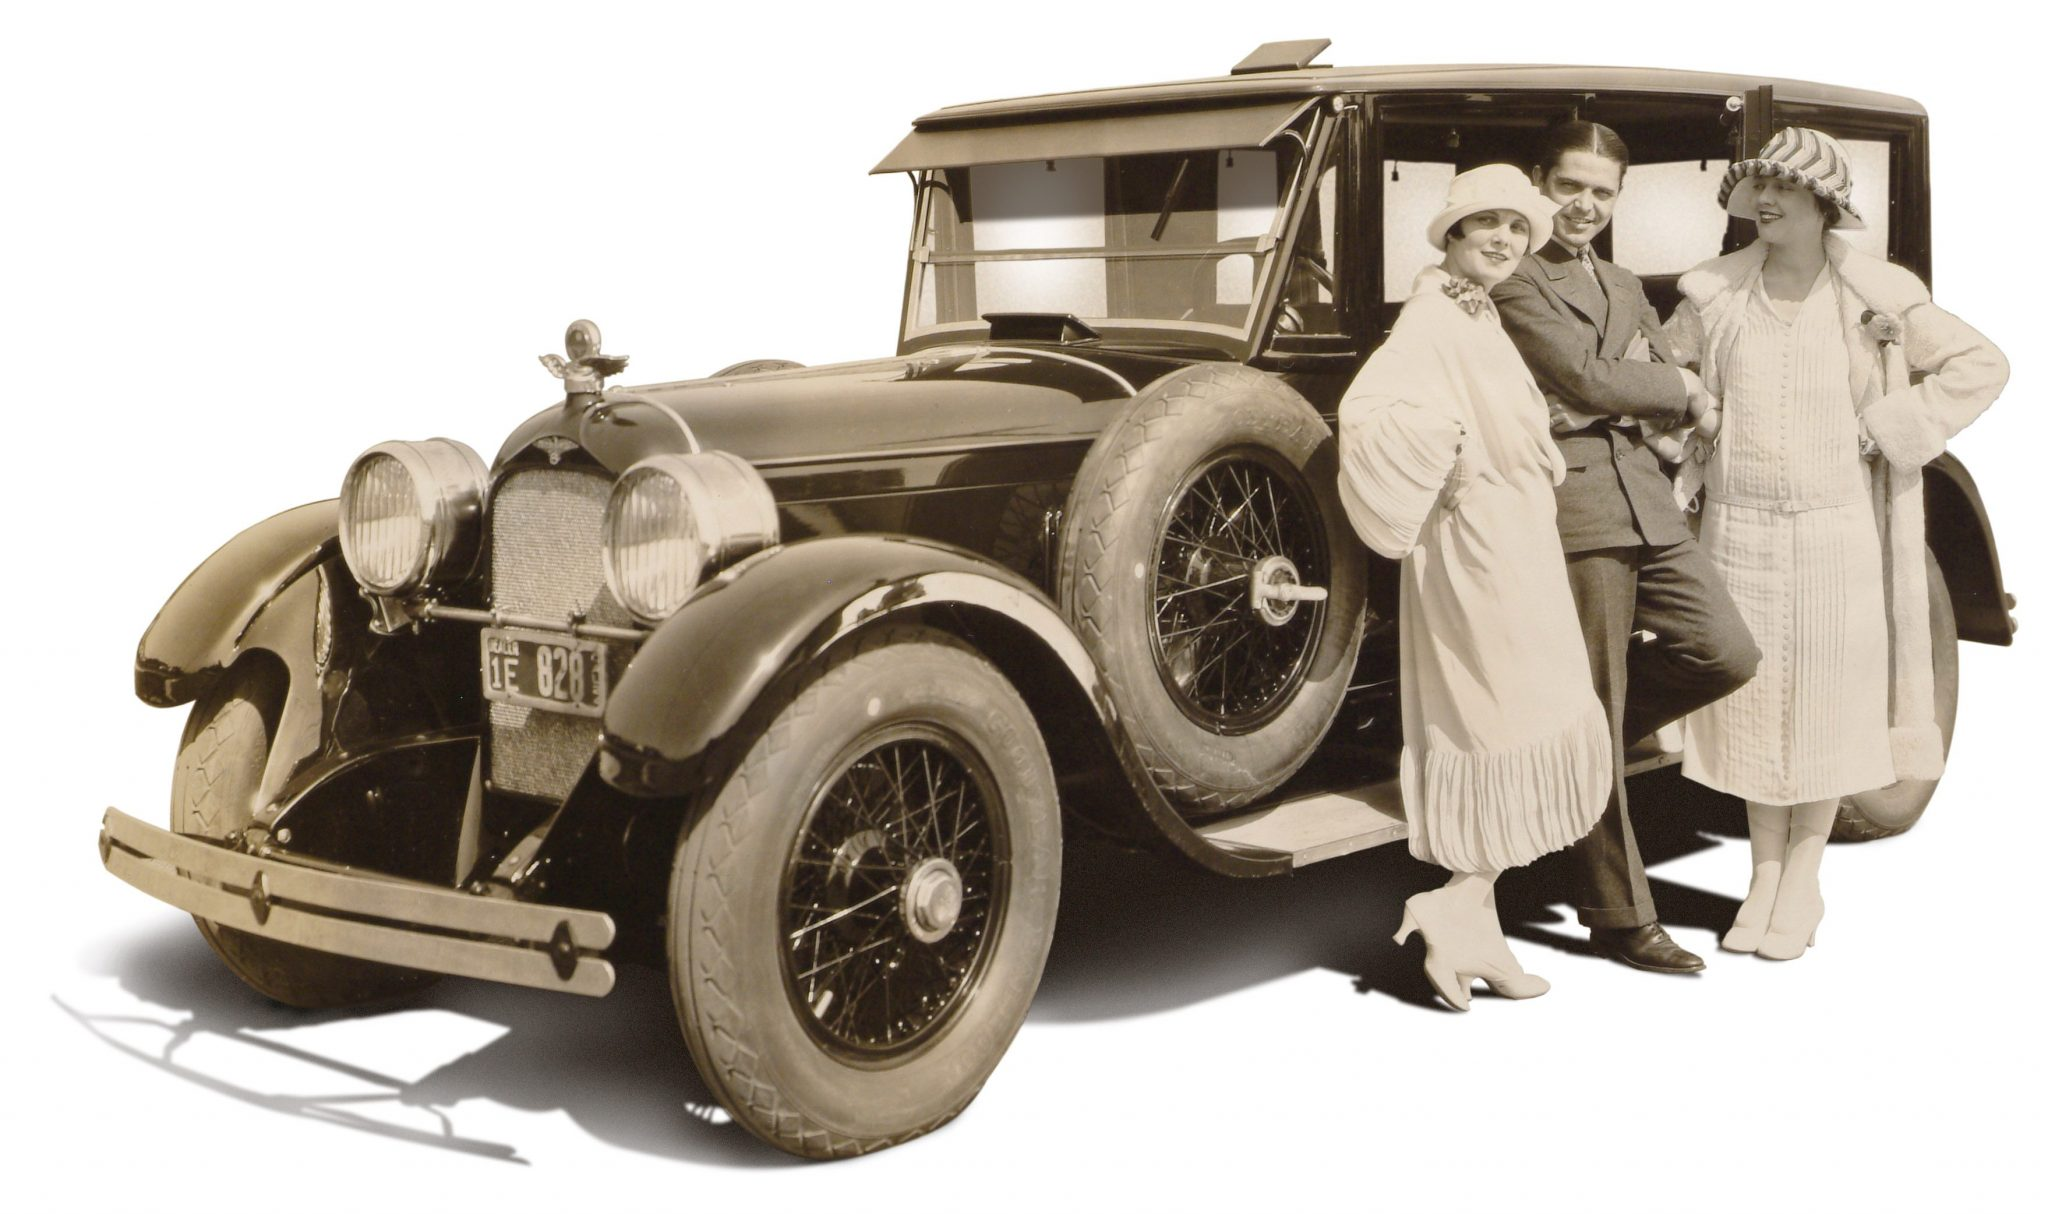 "Even in the 1920s the Duesenberg was the car of stars. Pictured with a 1924 limousine are Leatrice Joy, Malcolm MacGregor and Lois Wilson, who had just taken delivery of her new Duesenberg straight eight. Wilson co-stared with Alan Hale in one of Hollywood's first epic westerns, ""The Covered Wagon,"" directed by James Cruze and produced by Paramount Pictures in 1923. Latrice Joy co-starred in C.B. DeMille's original 1923 version of ""The Ten Commandments."""